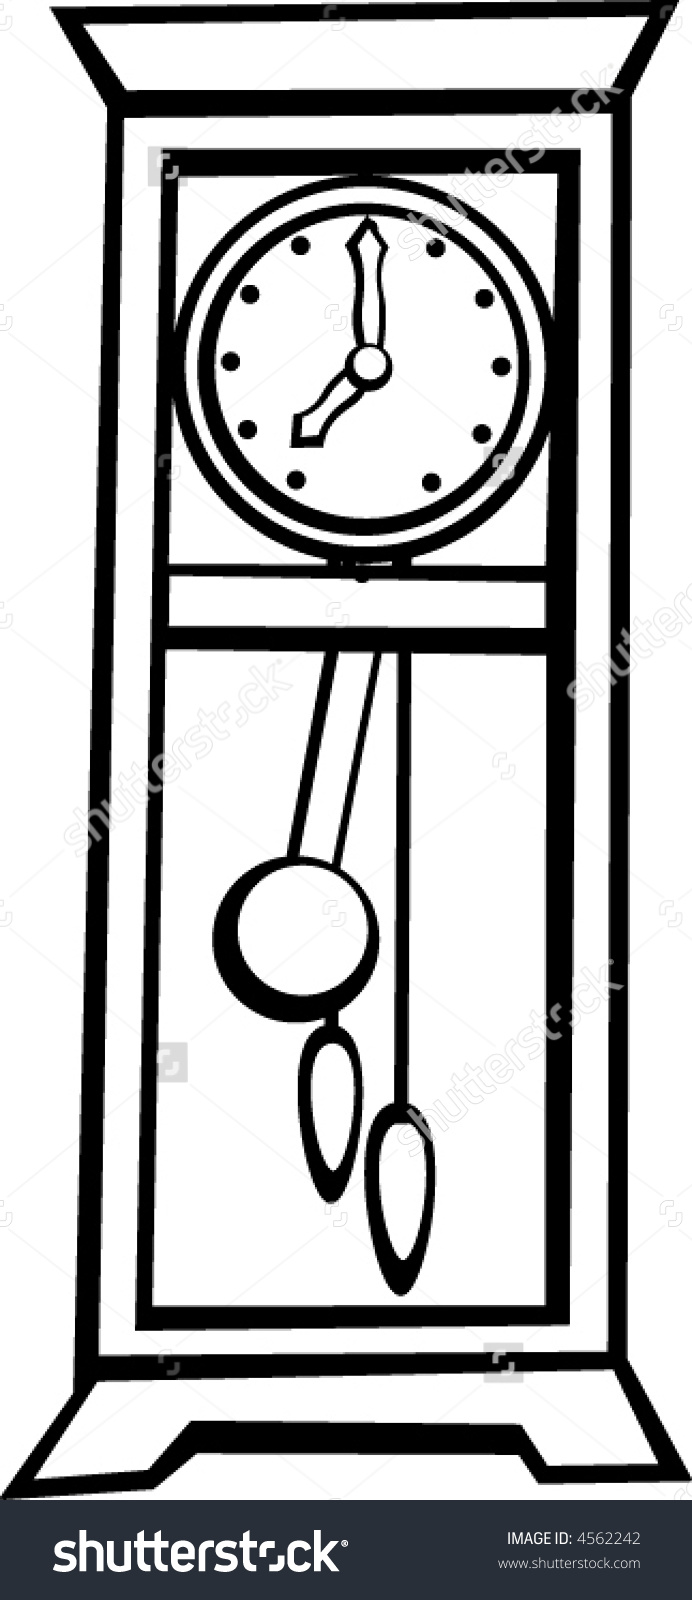 Wall clock with pendulum clipart svg free download Grandfather clock clipart black and white - ClipartFest svg free download